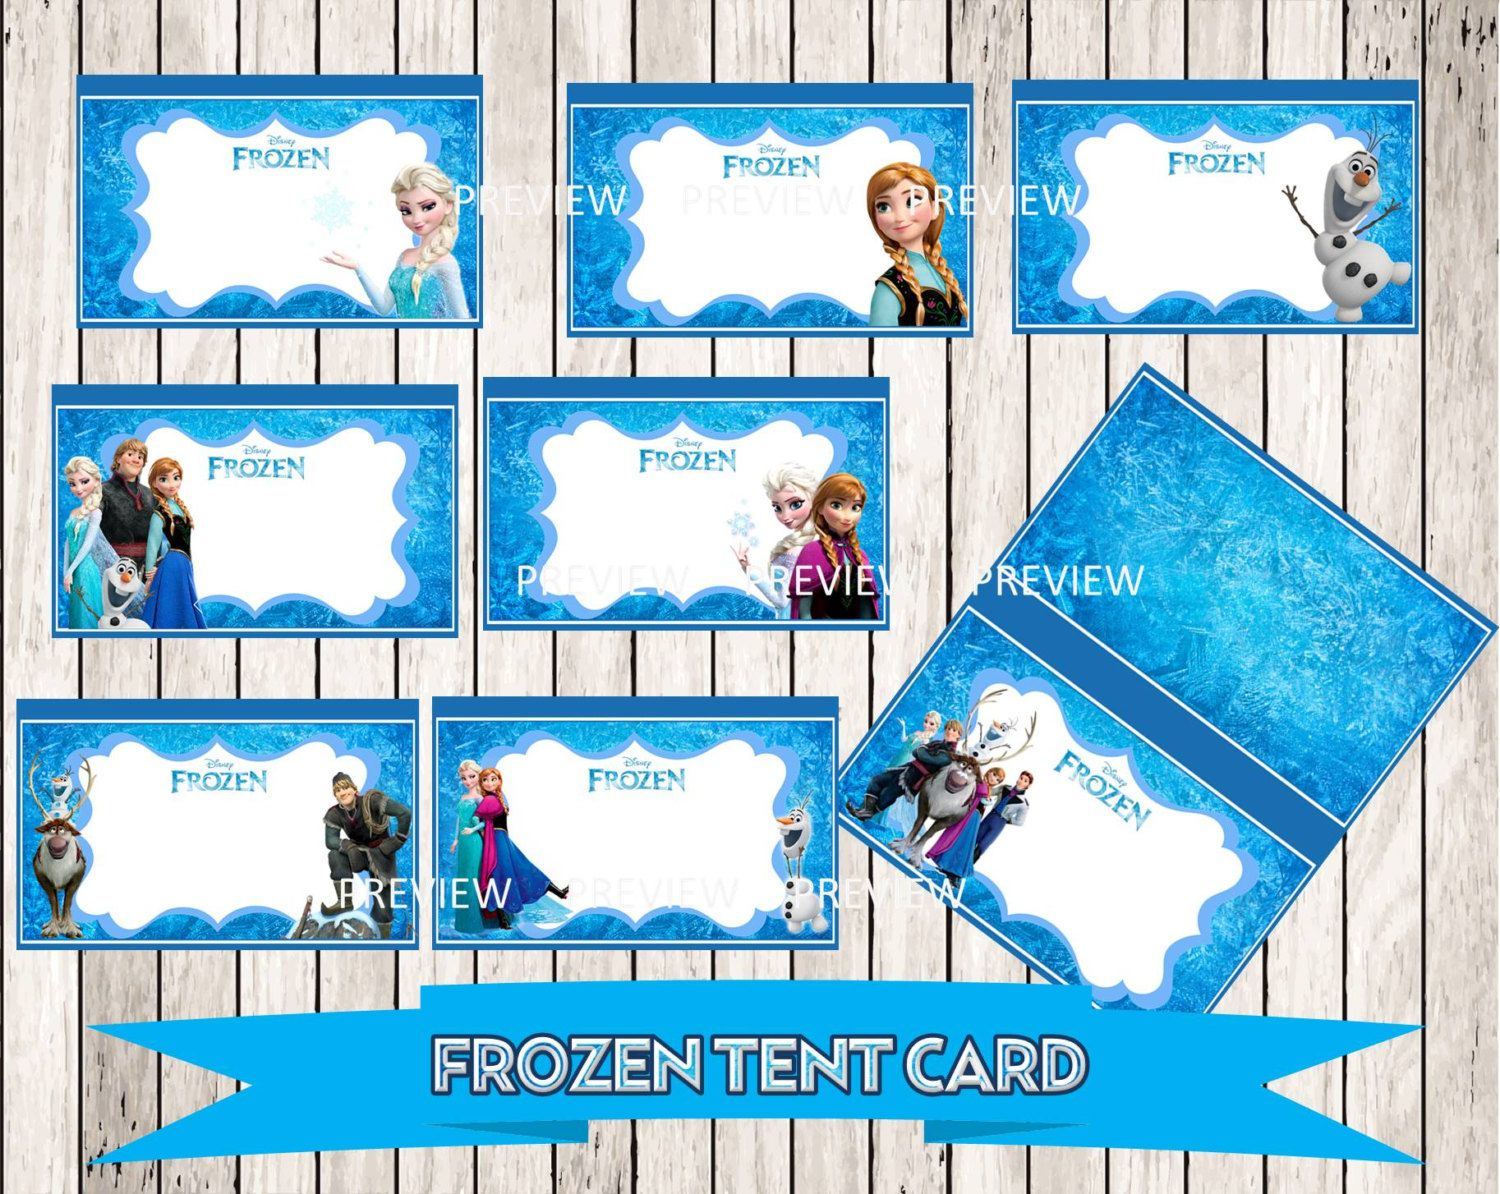 image about Frozen Party Food Labels Free Printable named Picture consequence for frozen social gathering food stuff labels free of charge printable